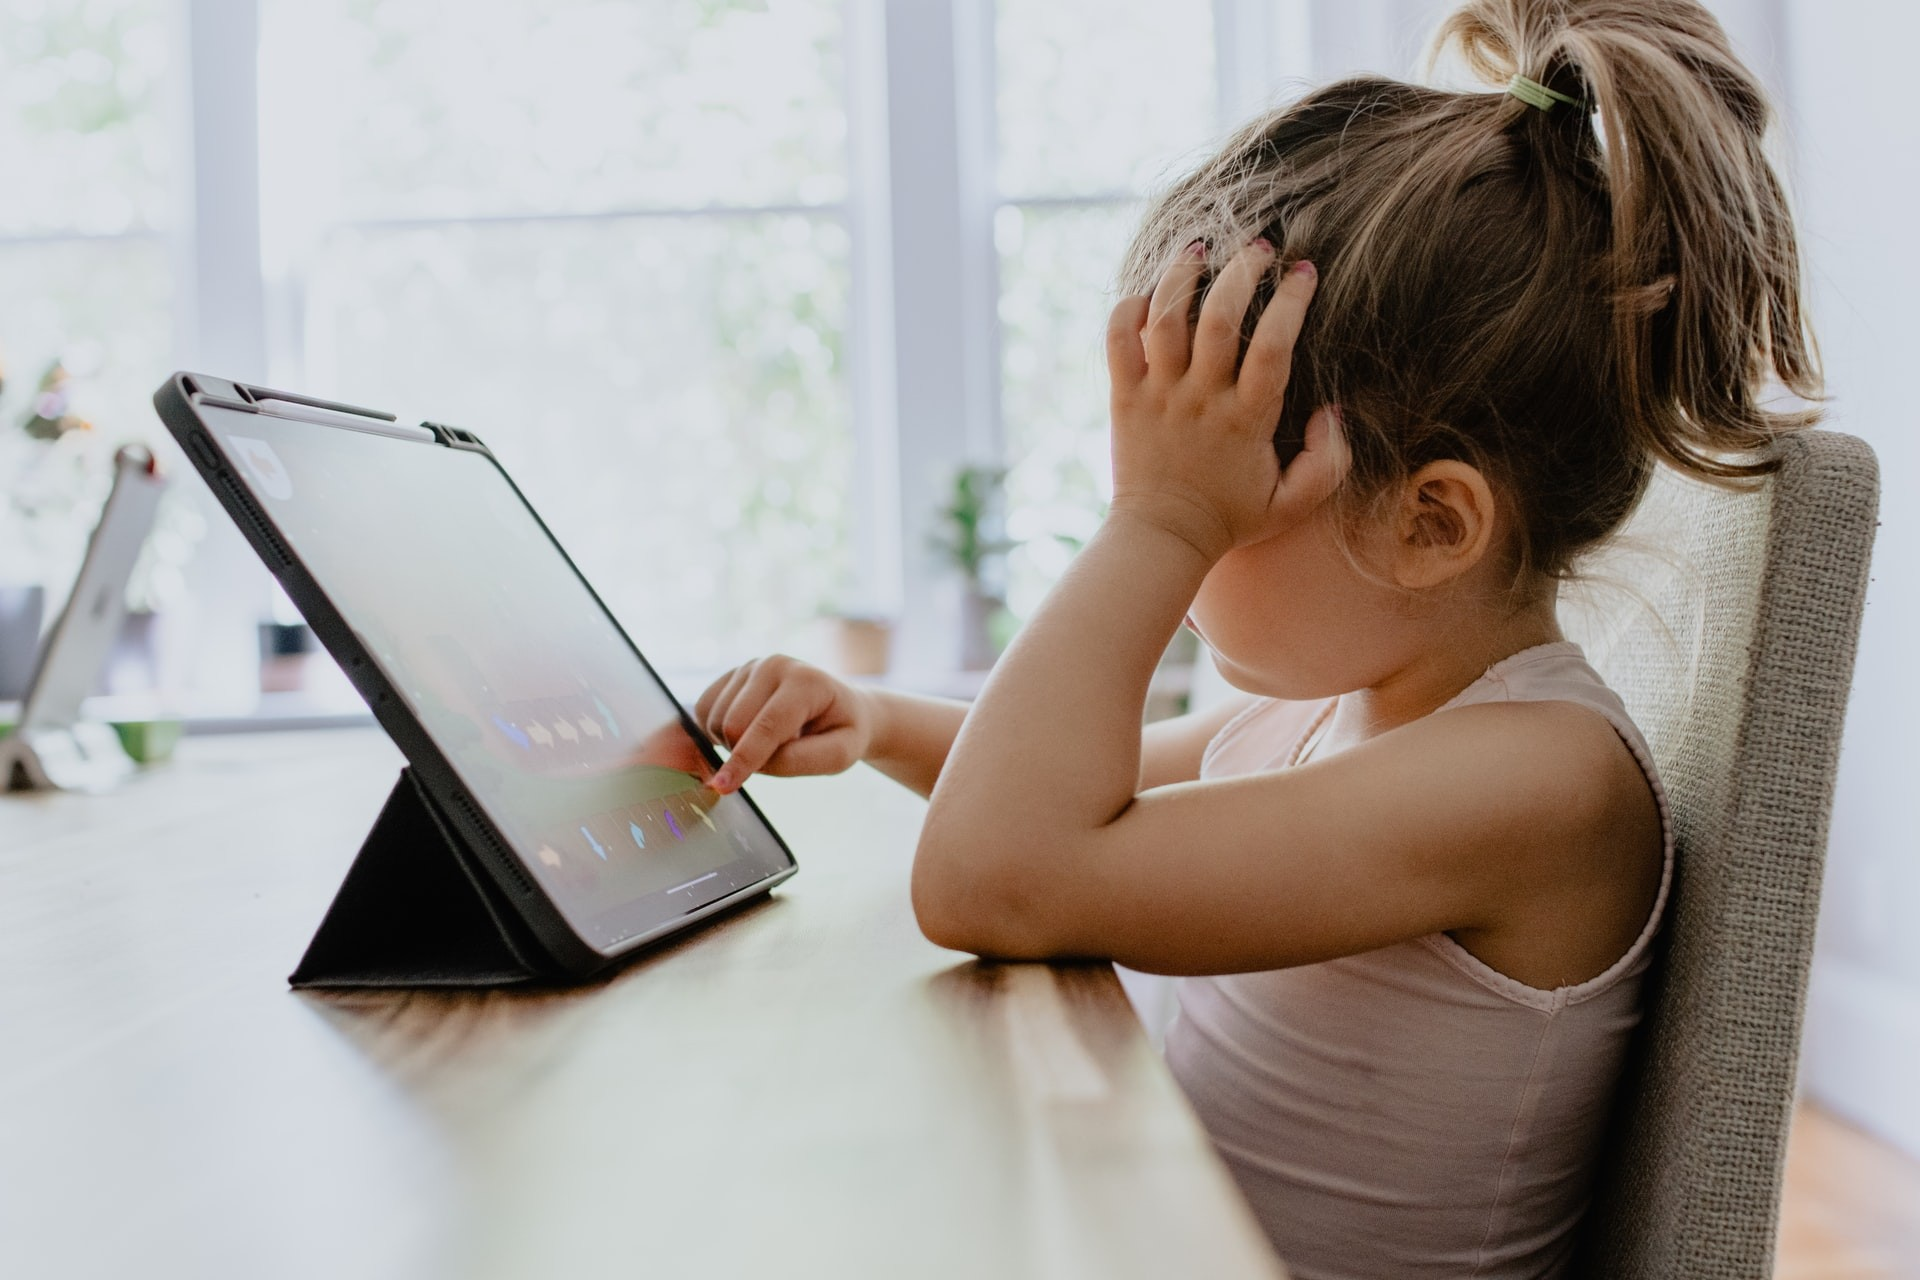 Young girl uses a tabled while completing a virtual learning assignment.